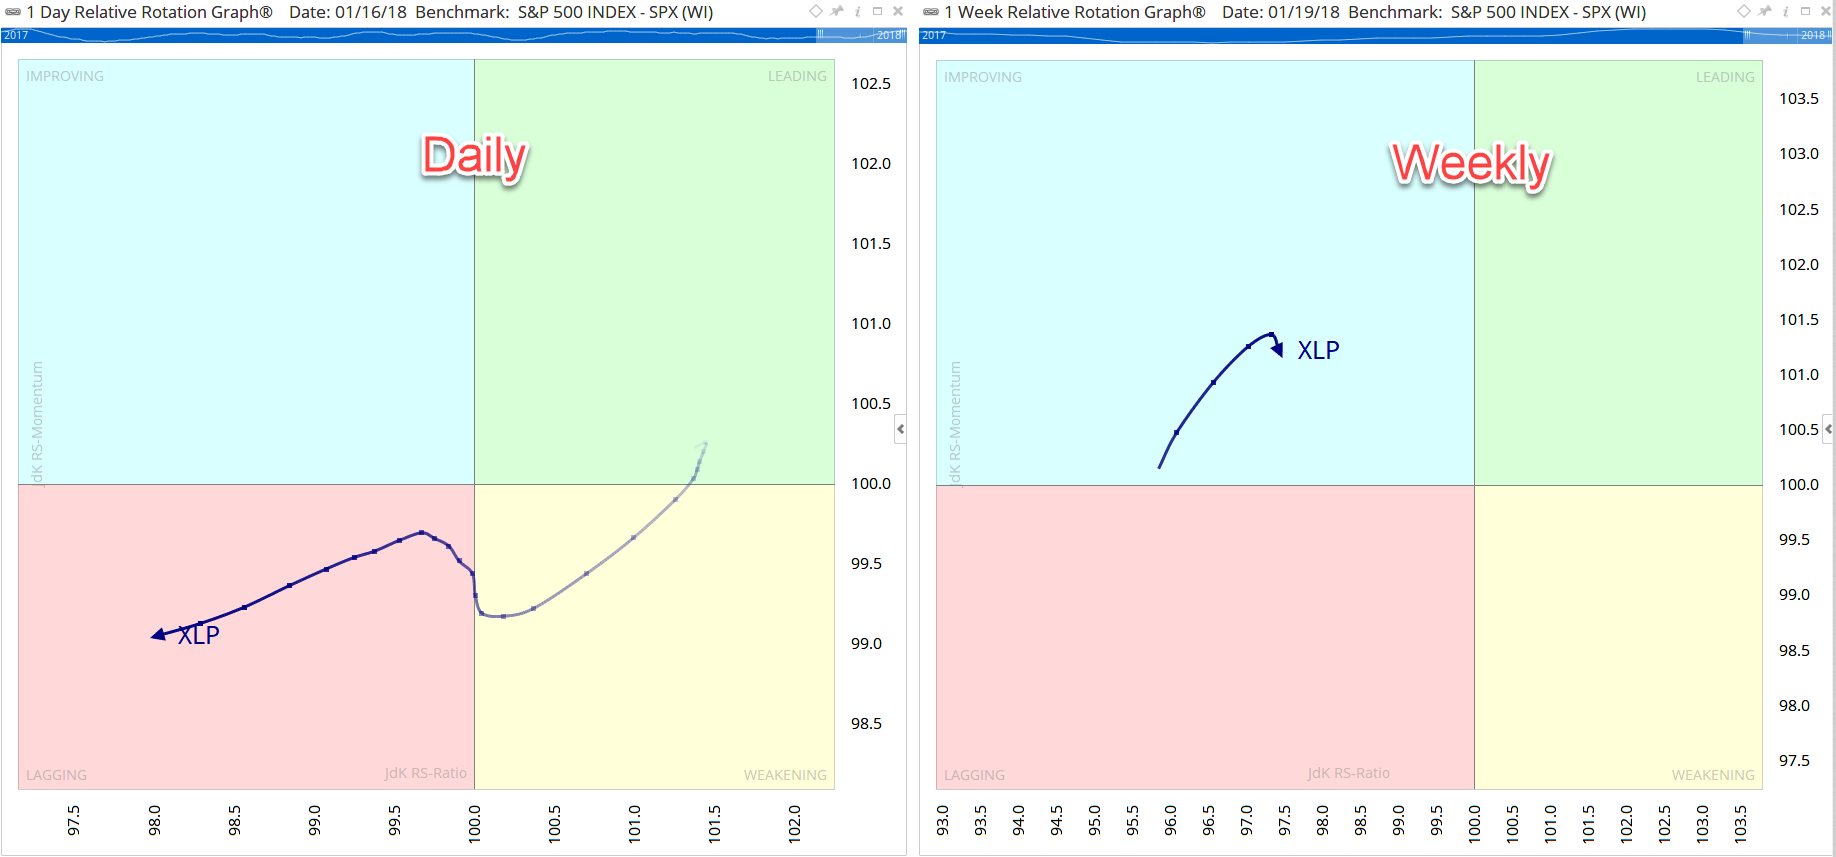 Daily vs Weekly Relative Rotation Graphs® | Optuma